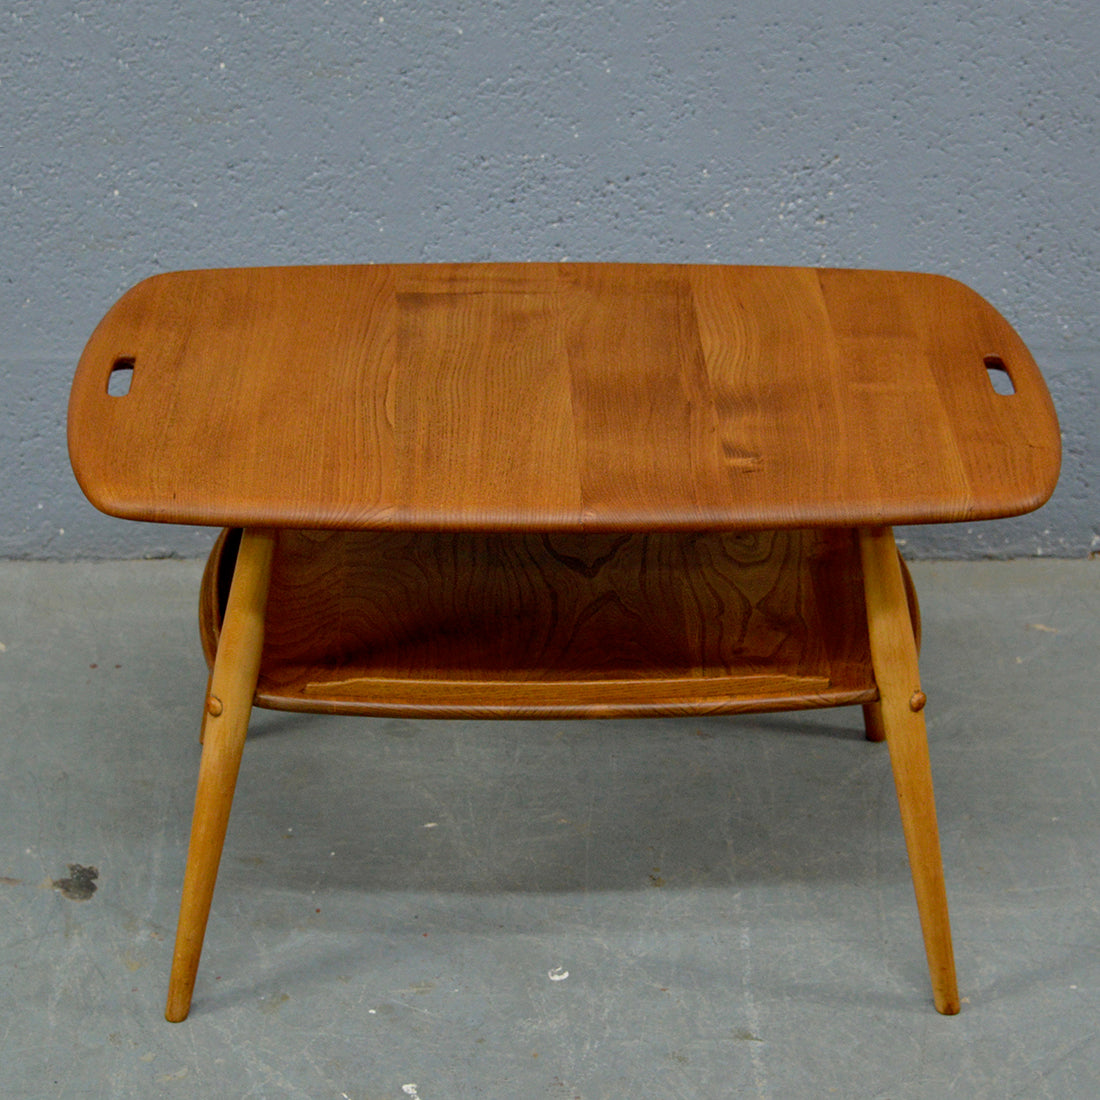 Terrific Mid Century Coffee Table Butlers Tray By Ercol Gamerscity Chair Design For Home Gamerscityorg